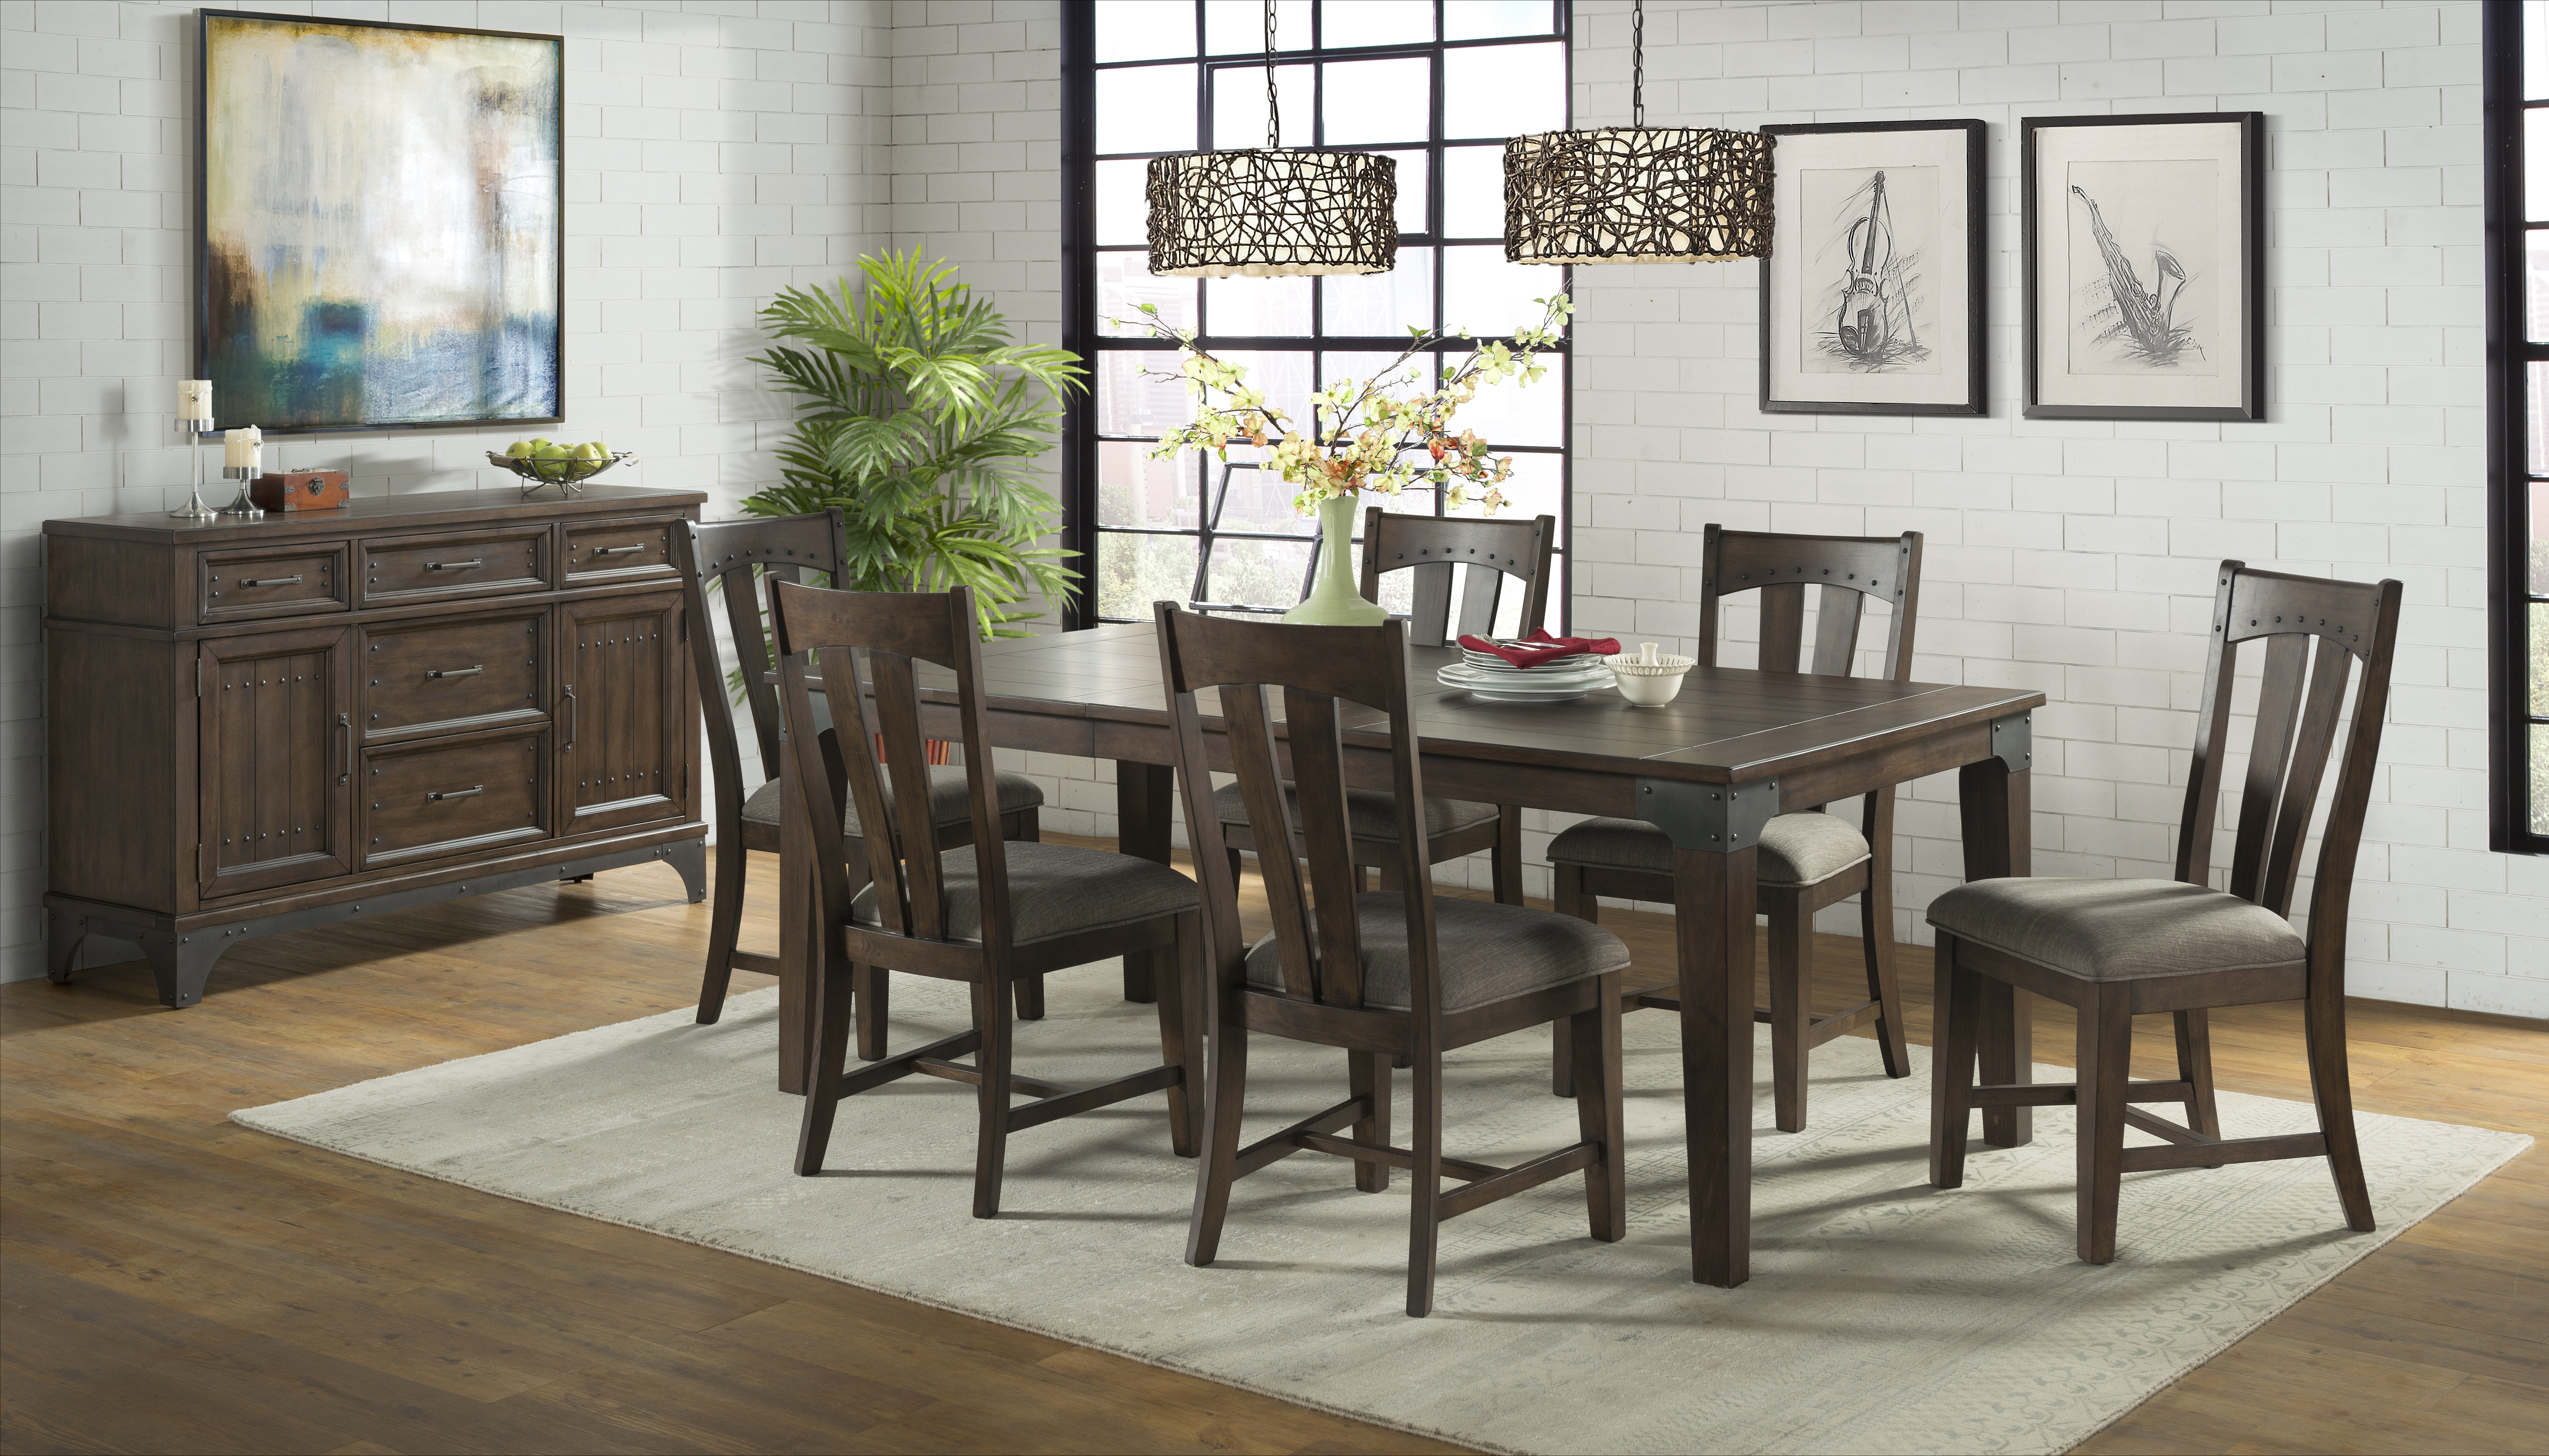 Whiskey River Dining Table Intercon Furniture